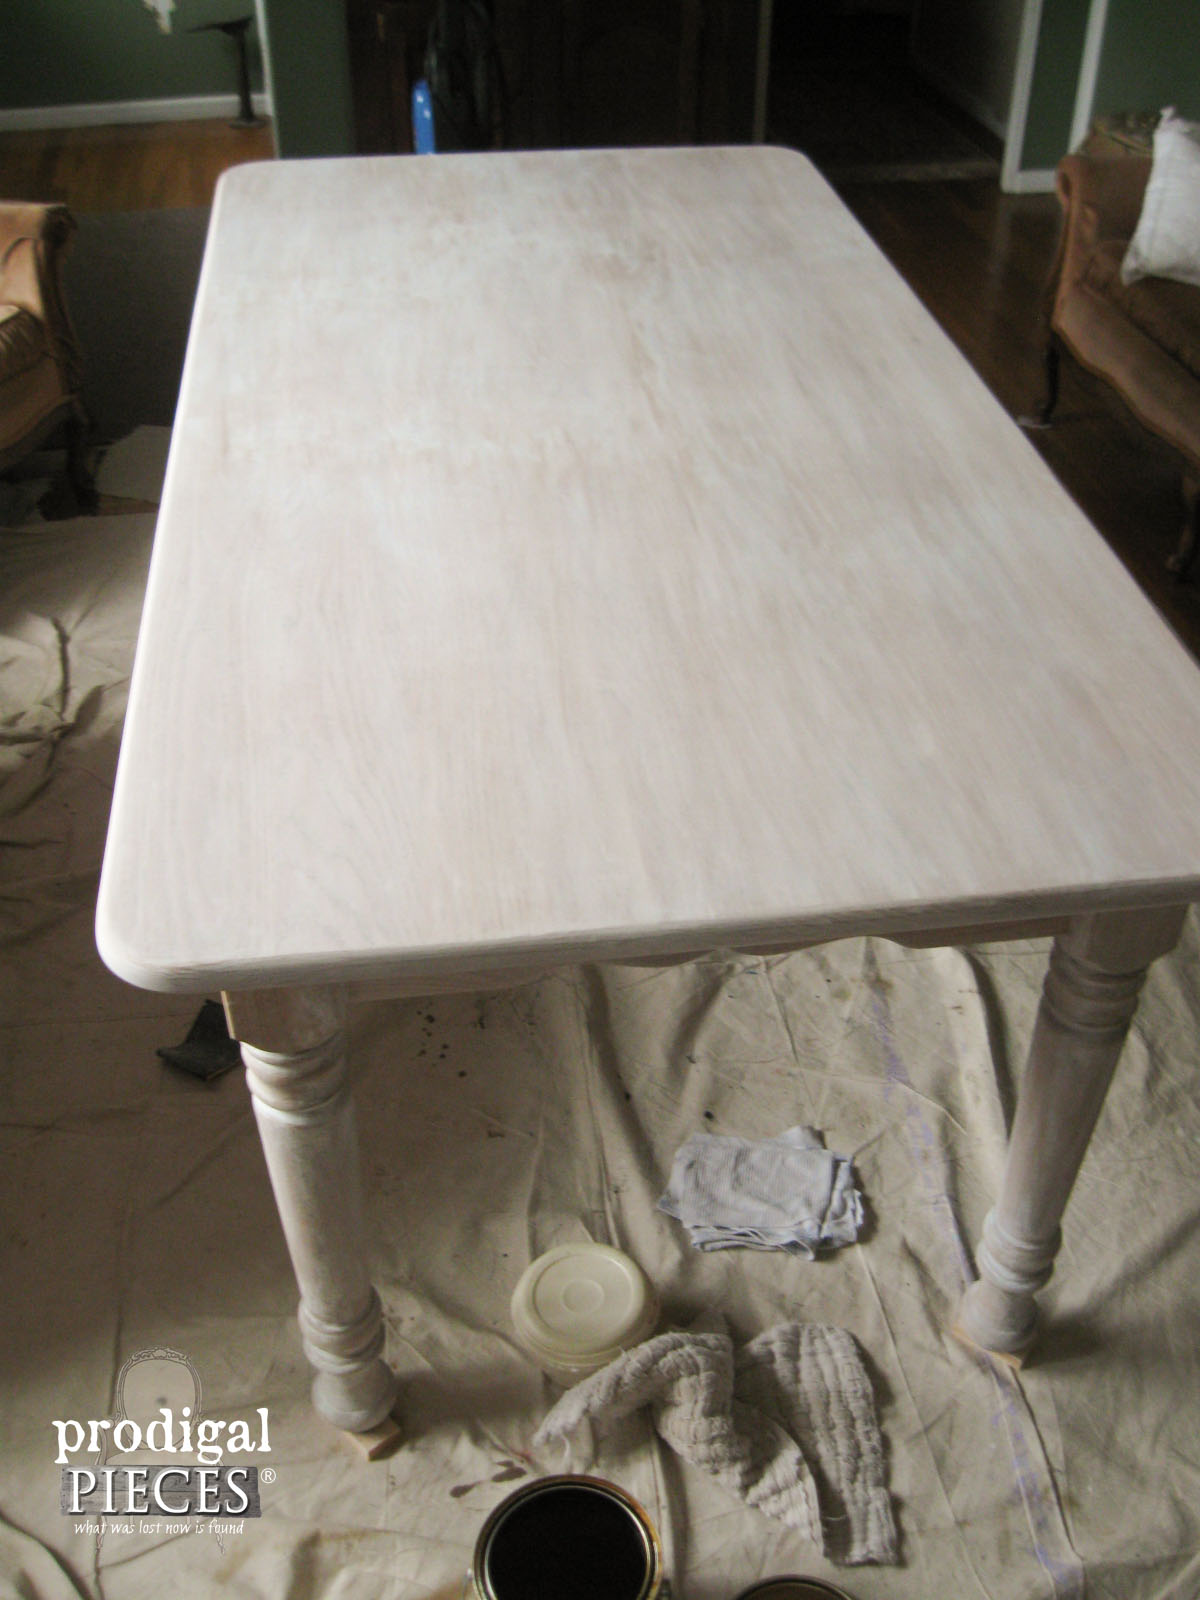 Whitewashed Or Limewashed Wood Prodigal Pieces - White wash dining table